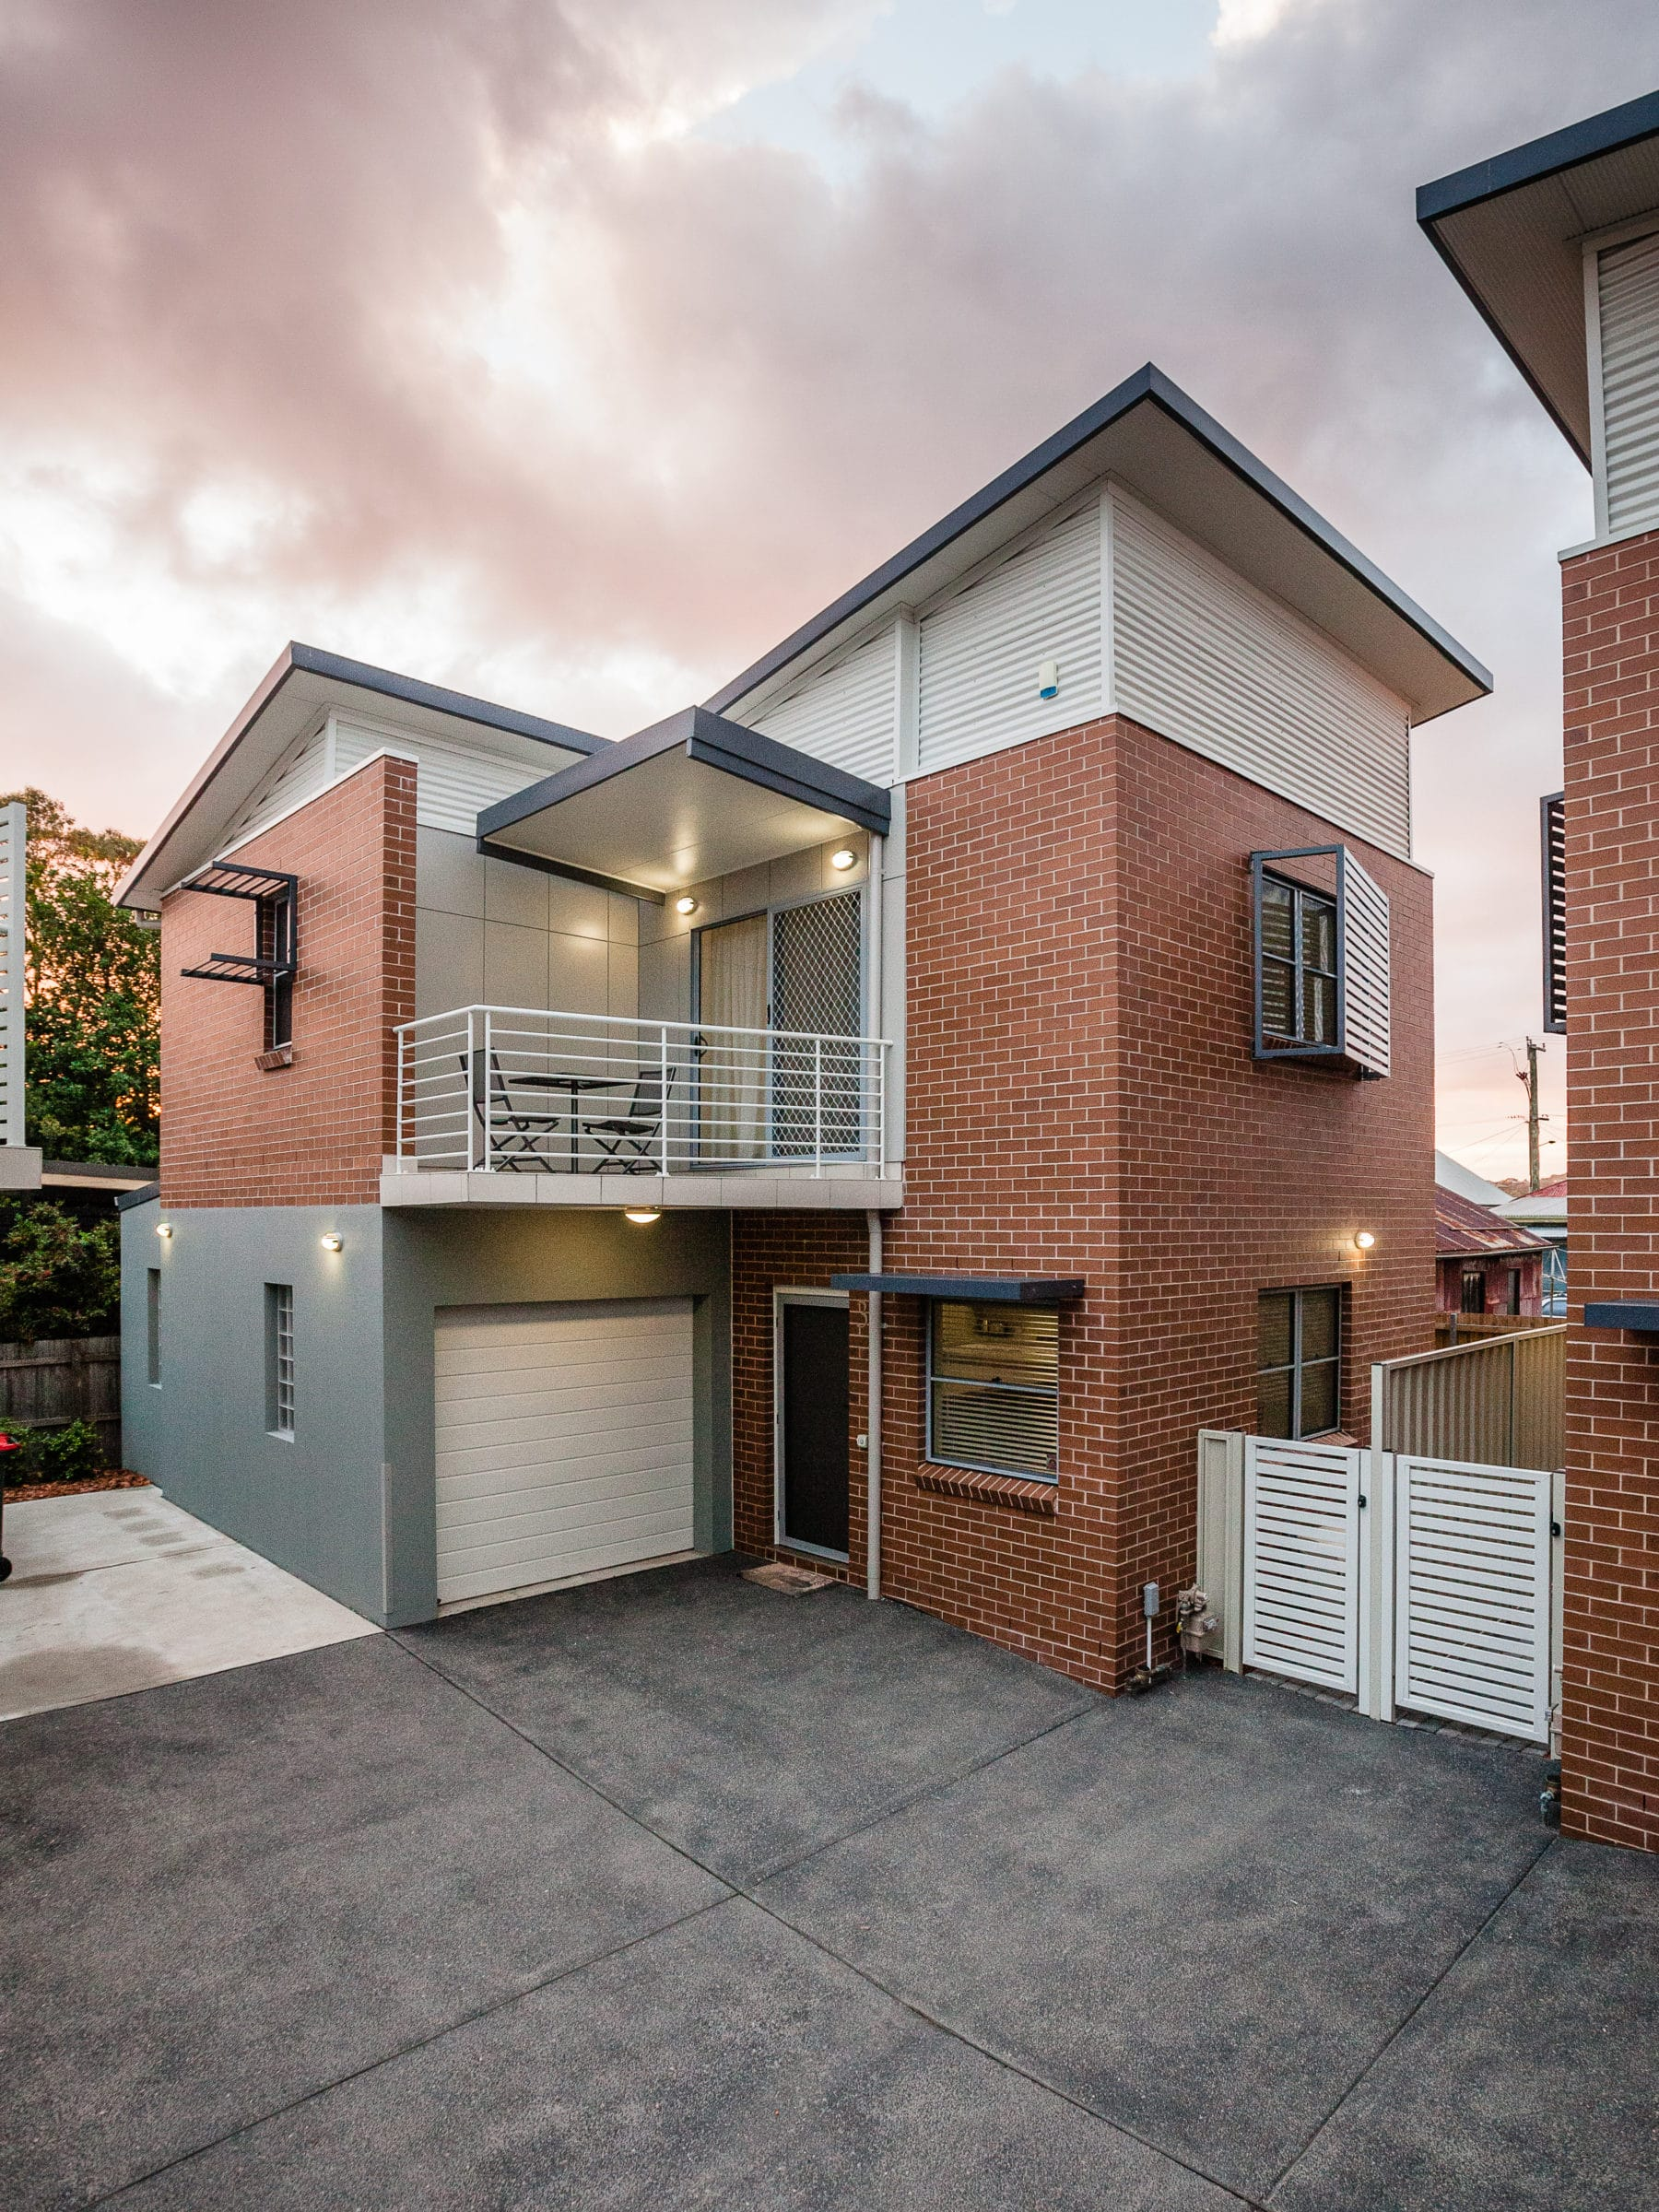 Everton Apartments - https://www.newcastleapartments.com.au/wp-content/uploads/2020/01/Everton_Street061-scaled.jpg